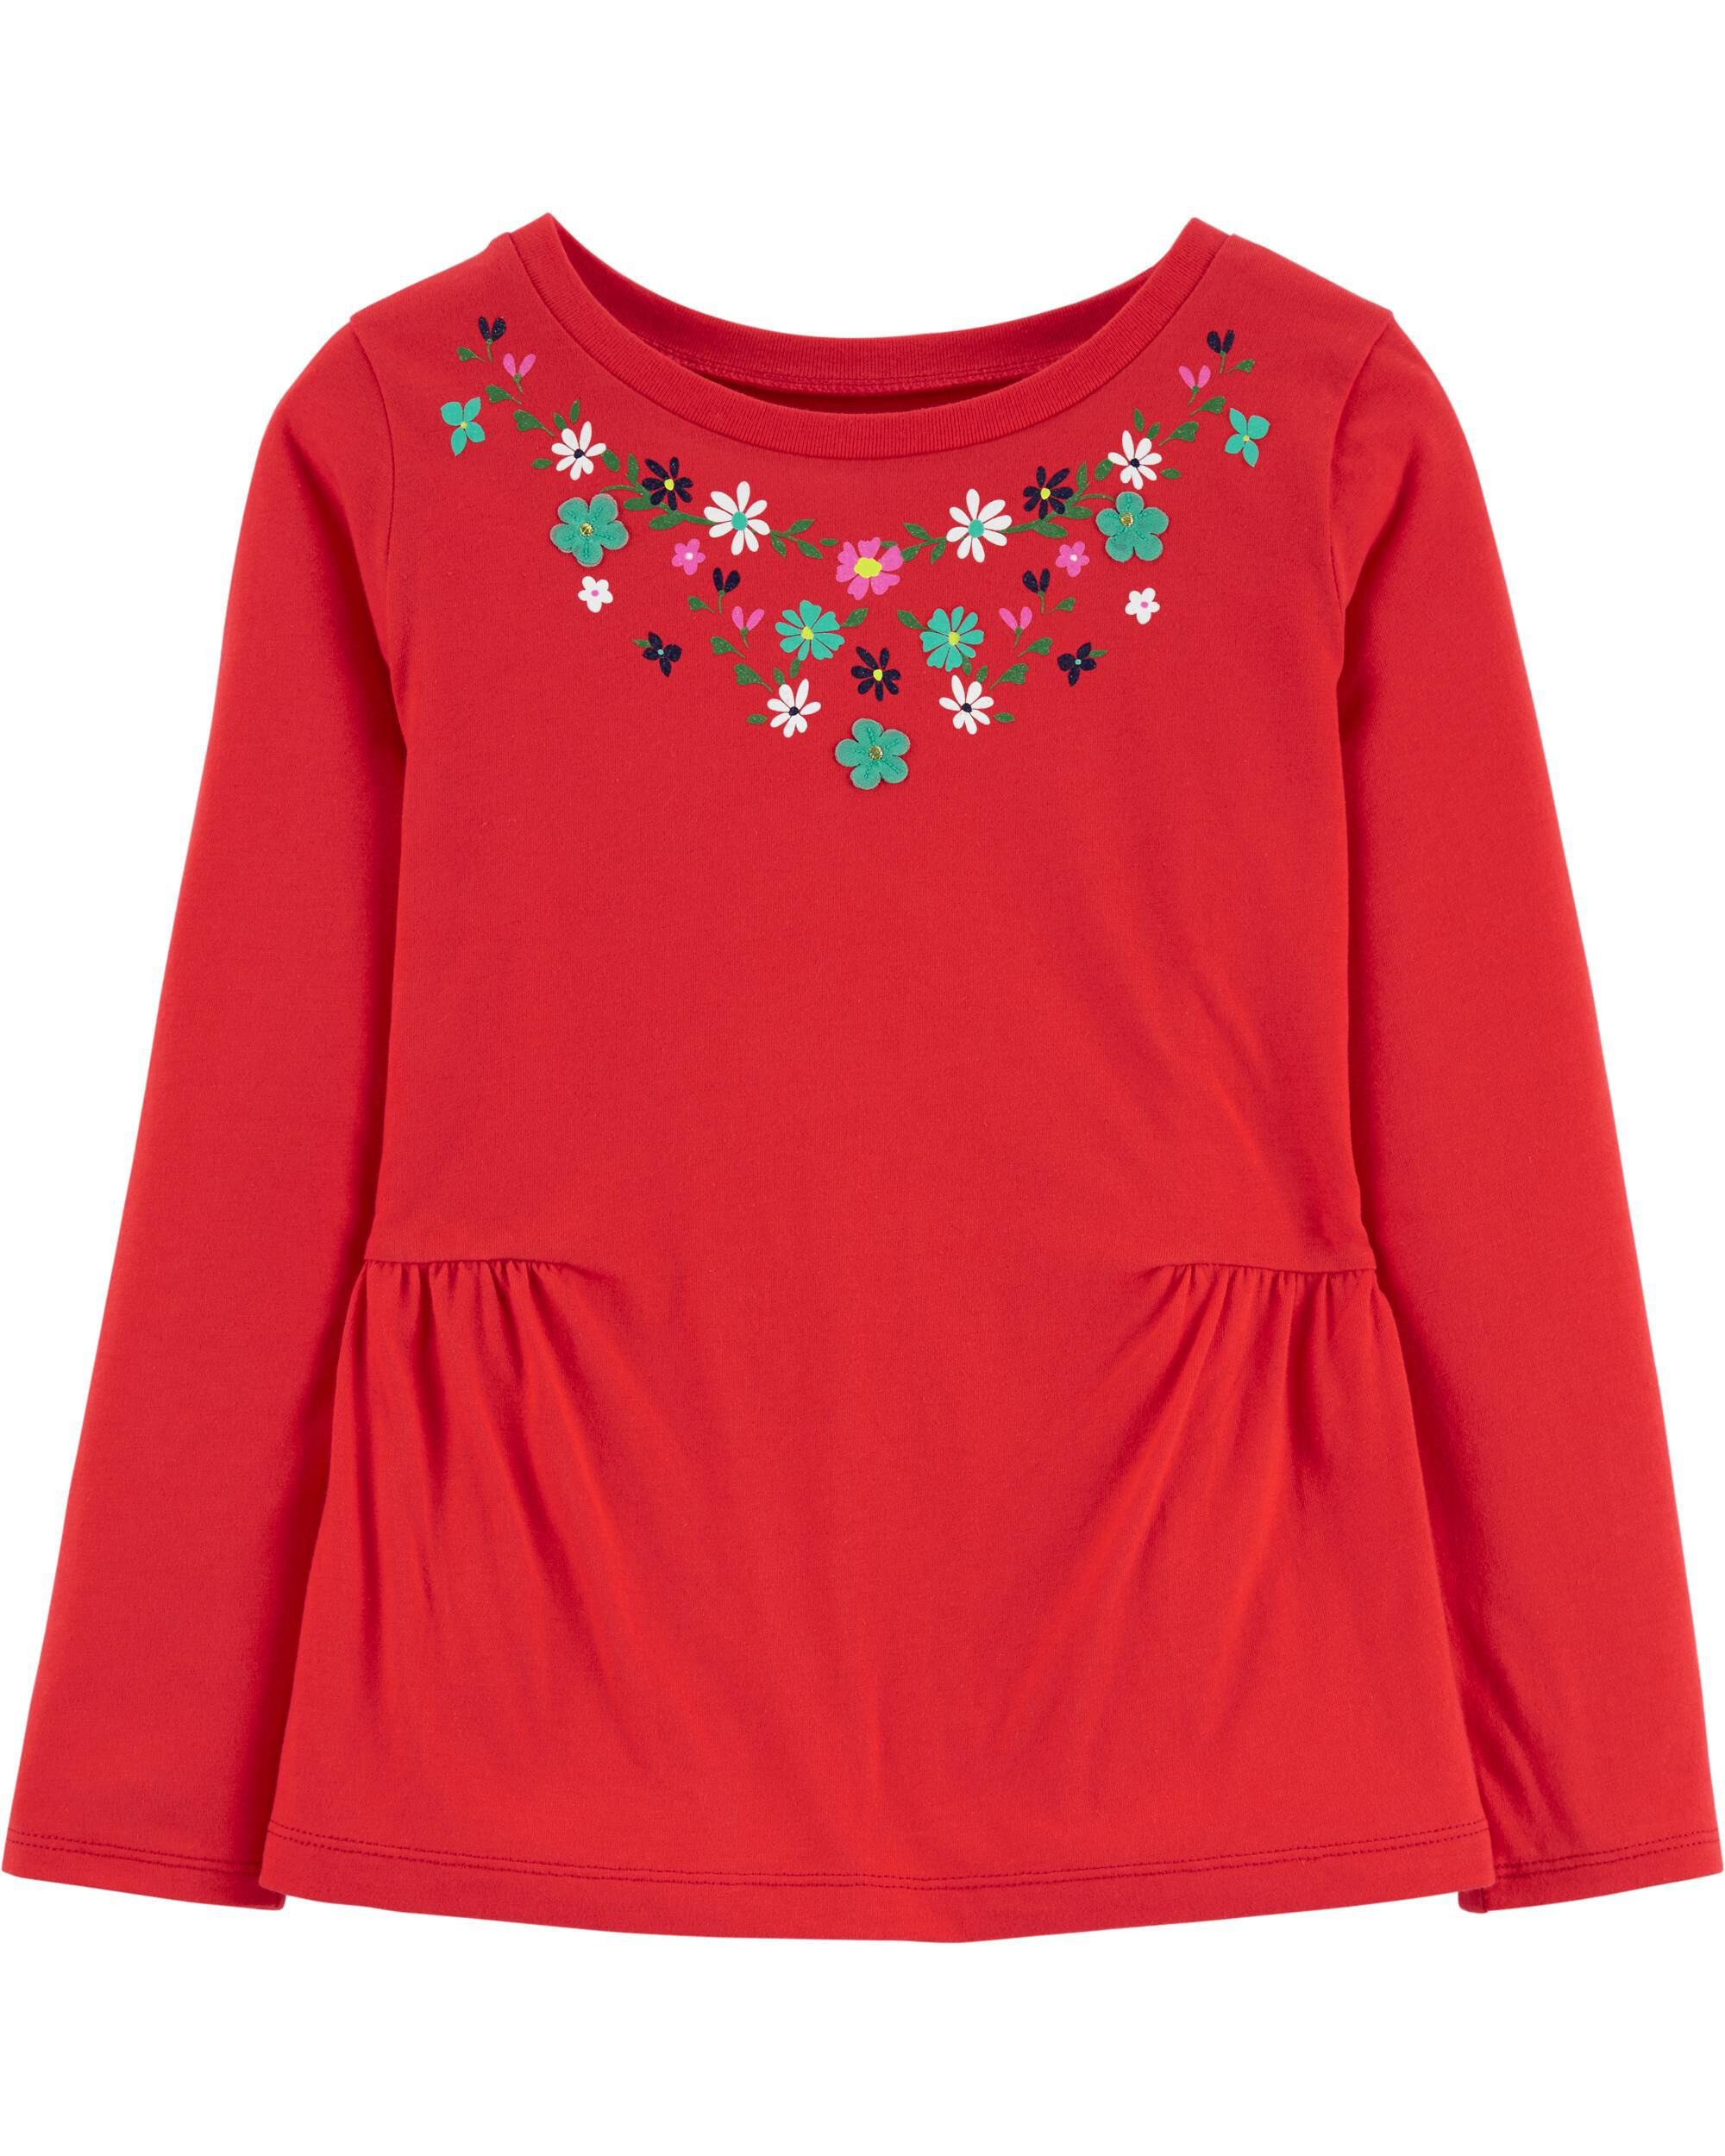 *Clearance*  Floral Peplum Top